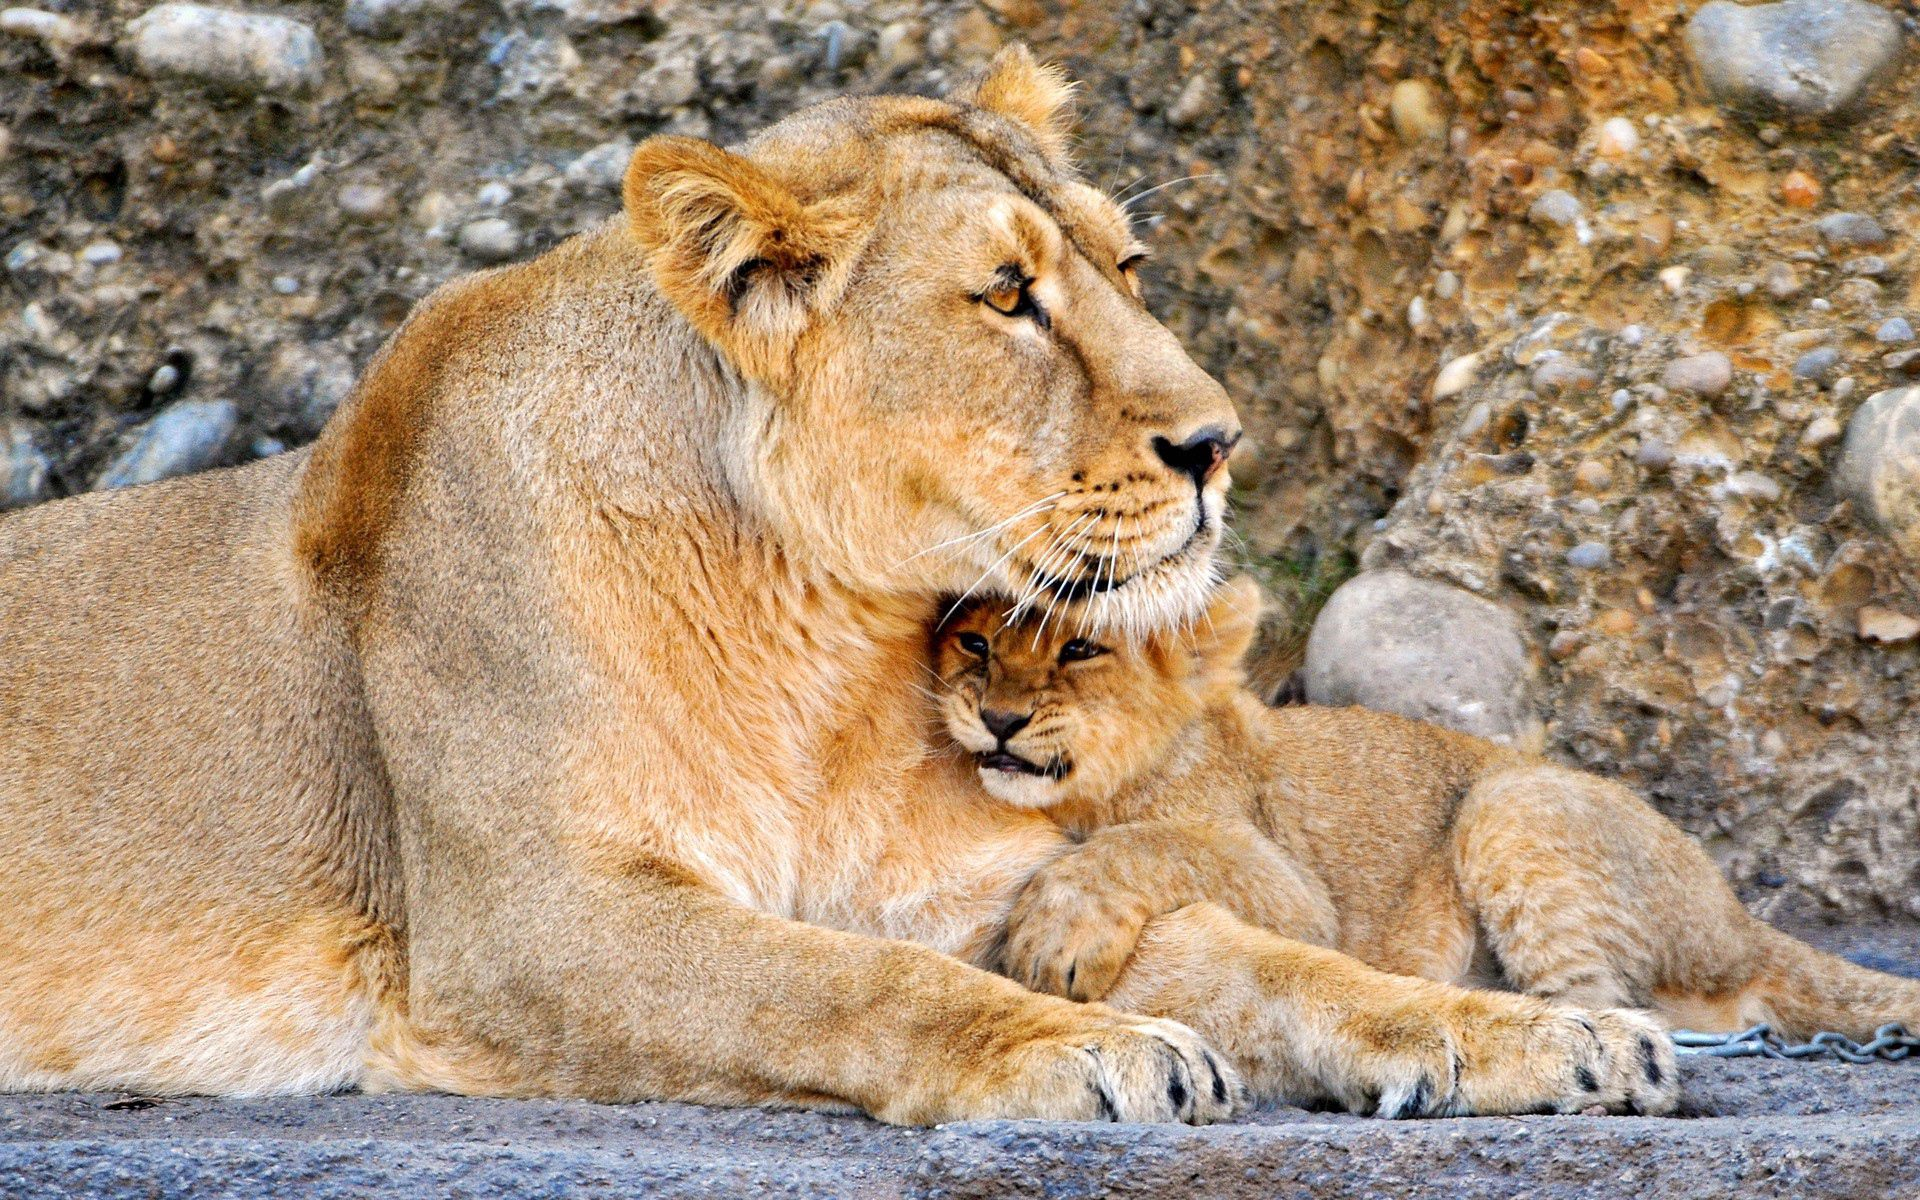 133310 download wallpaper Animals, Lion, Lioness, Couple, Pair, Young, Joey screensavers and pictures for free